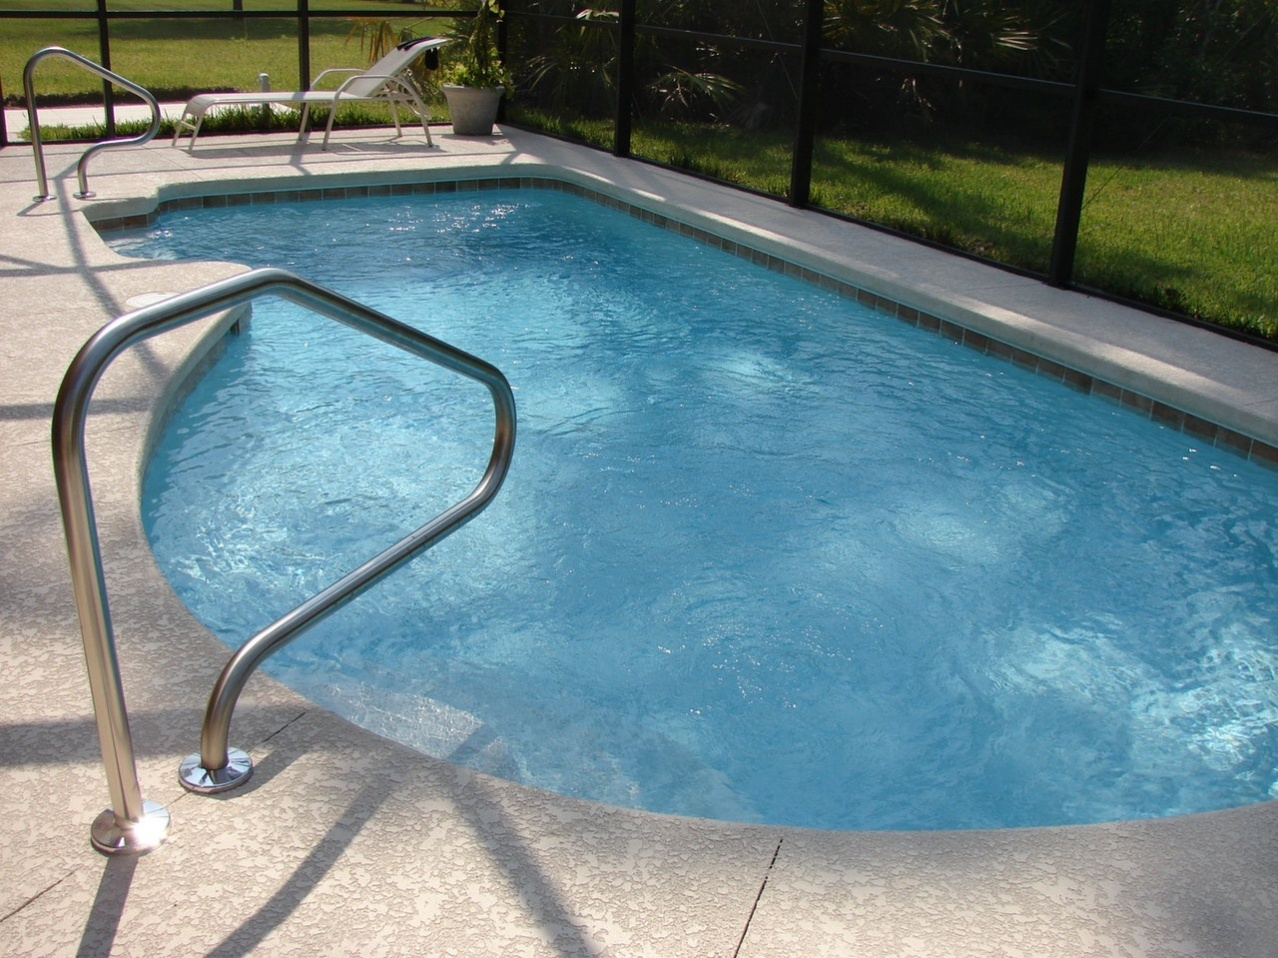 Extending your pool's life